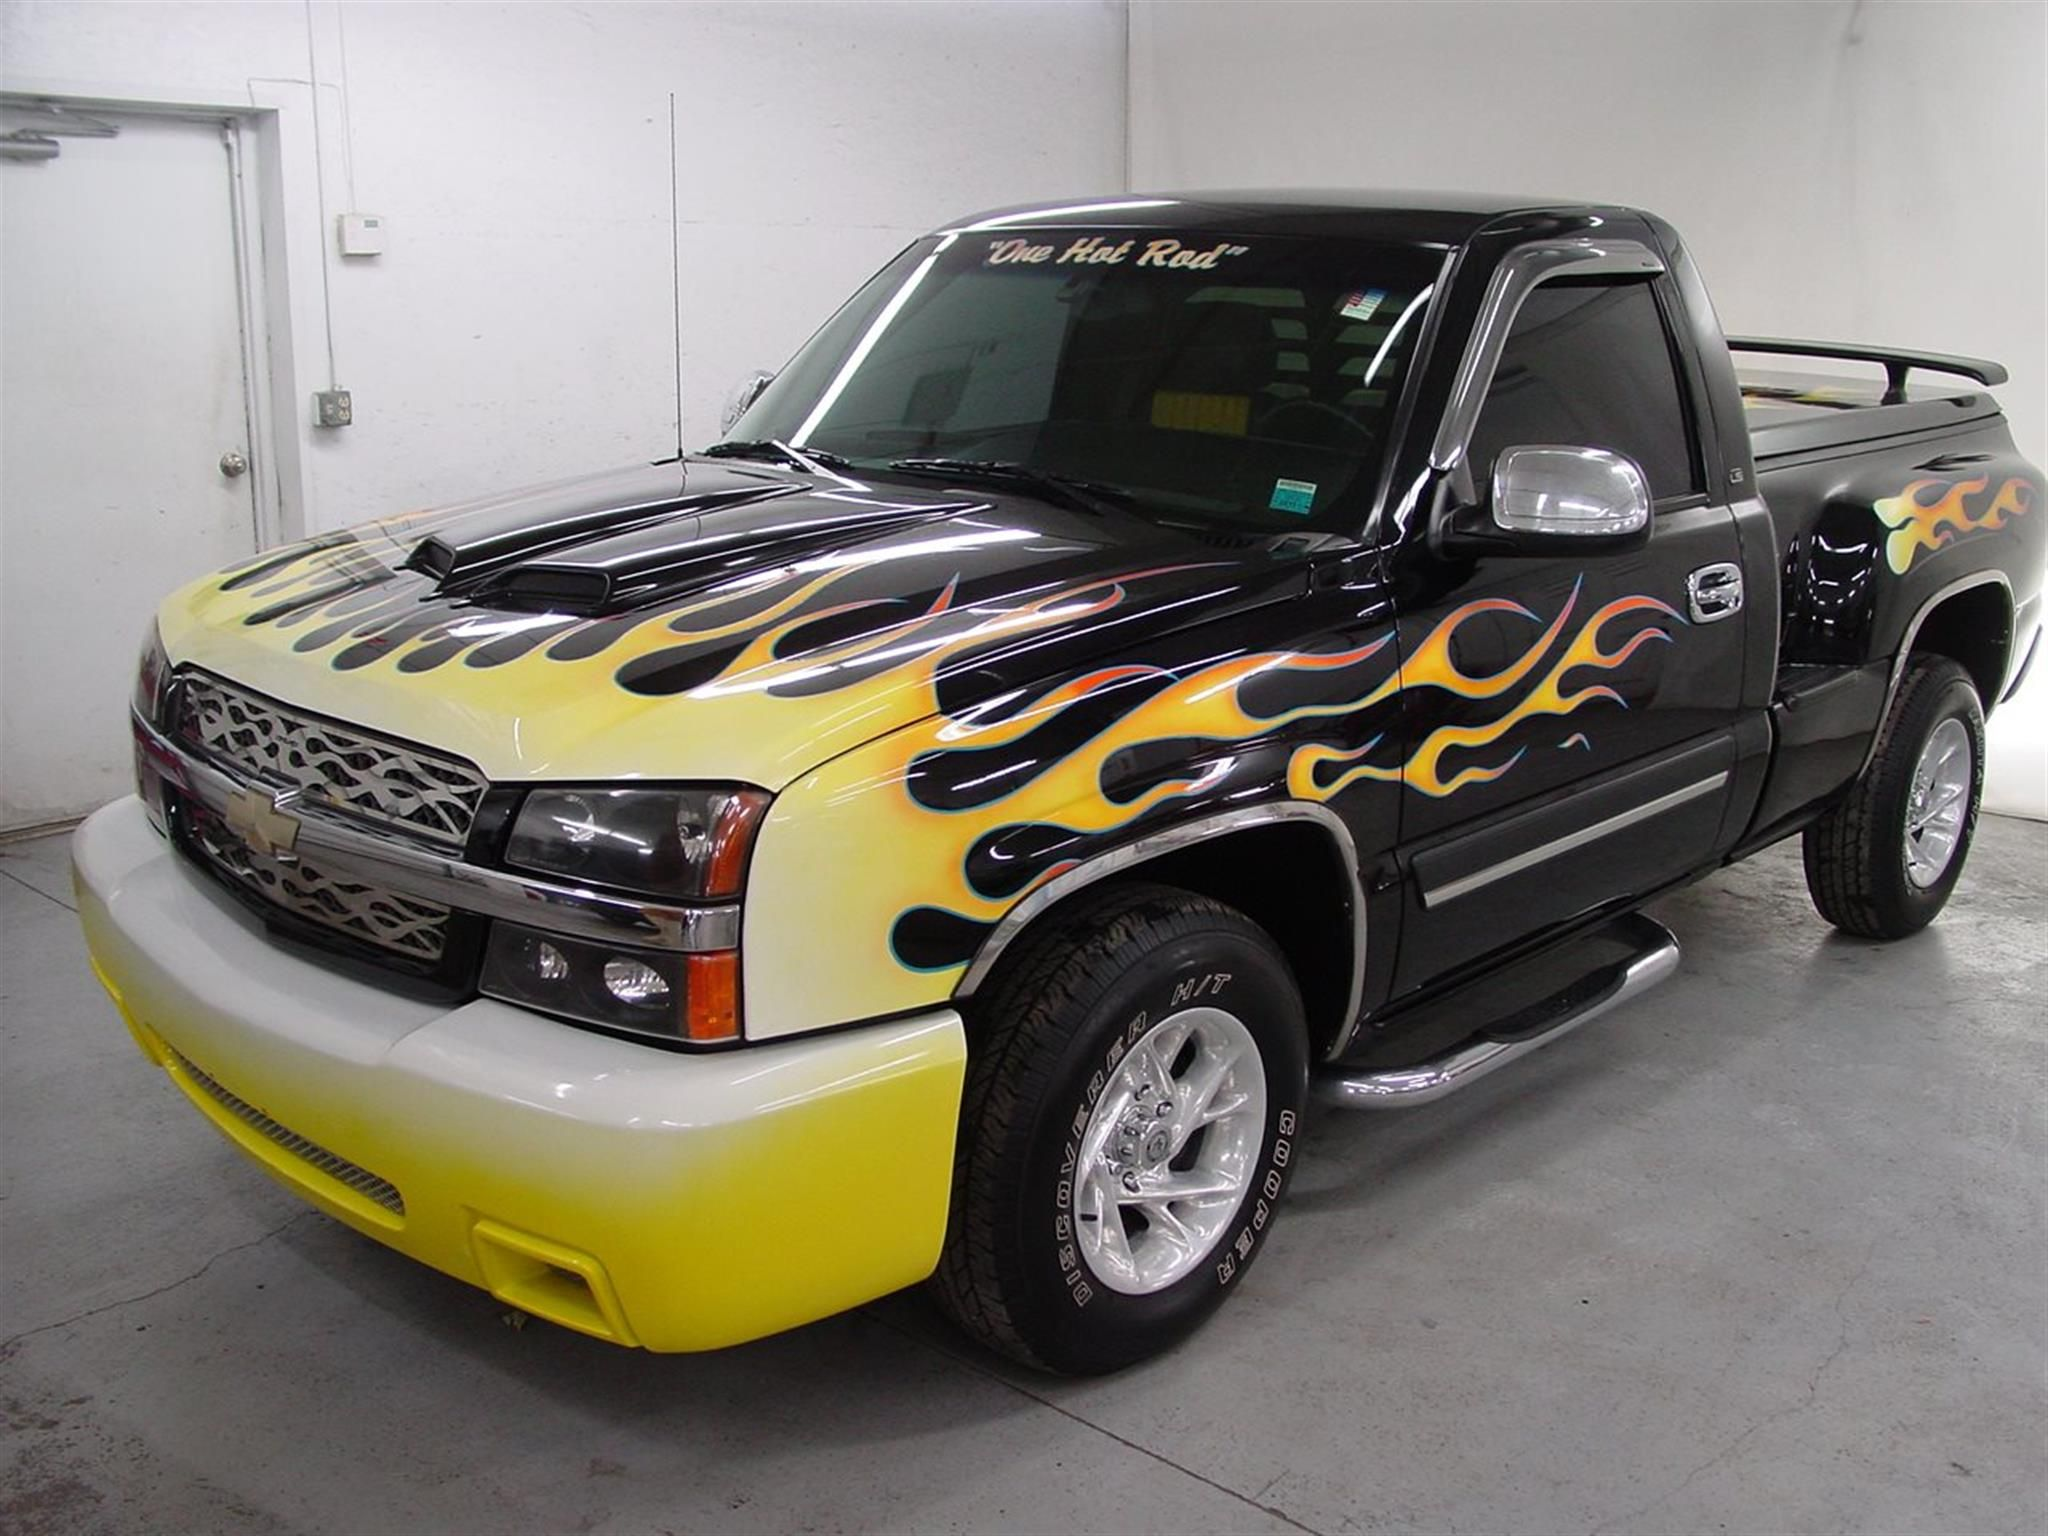 Chevrolet Pickup by Flower City Customs in  Webster  NY . Click to view more photos and mod info.